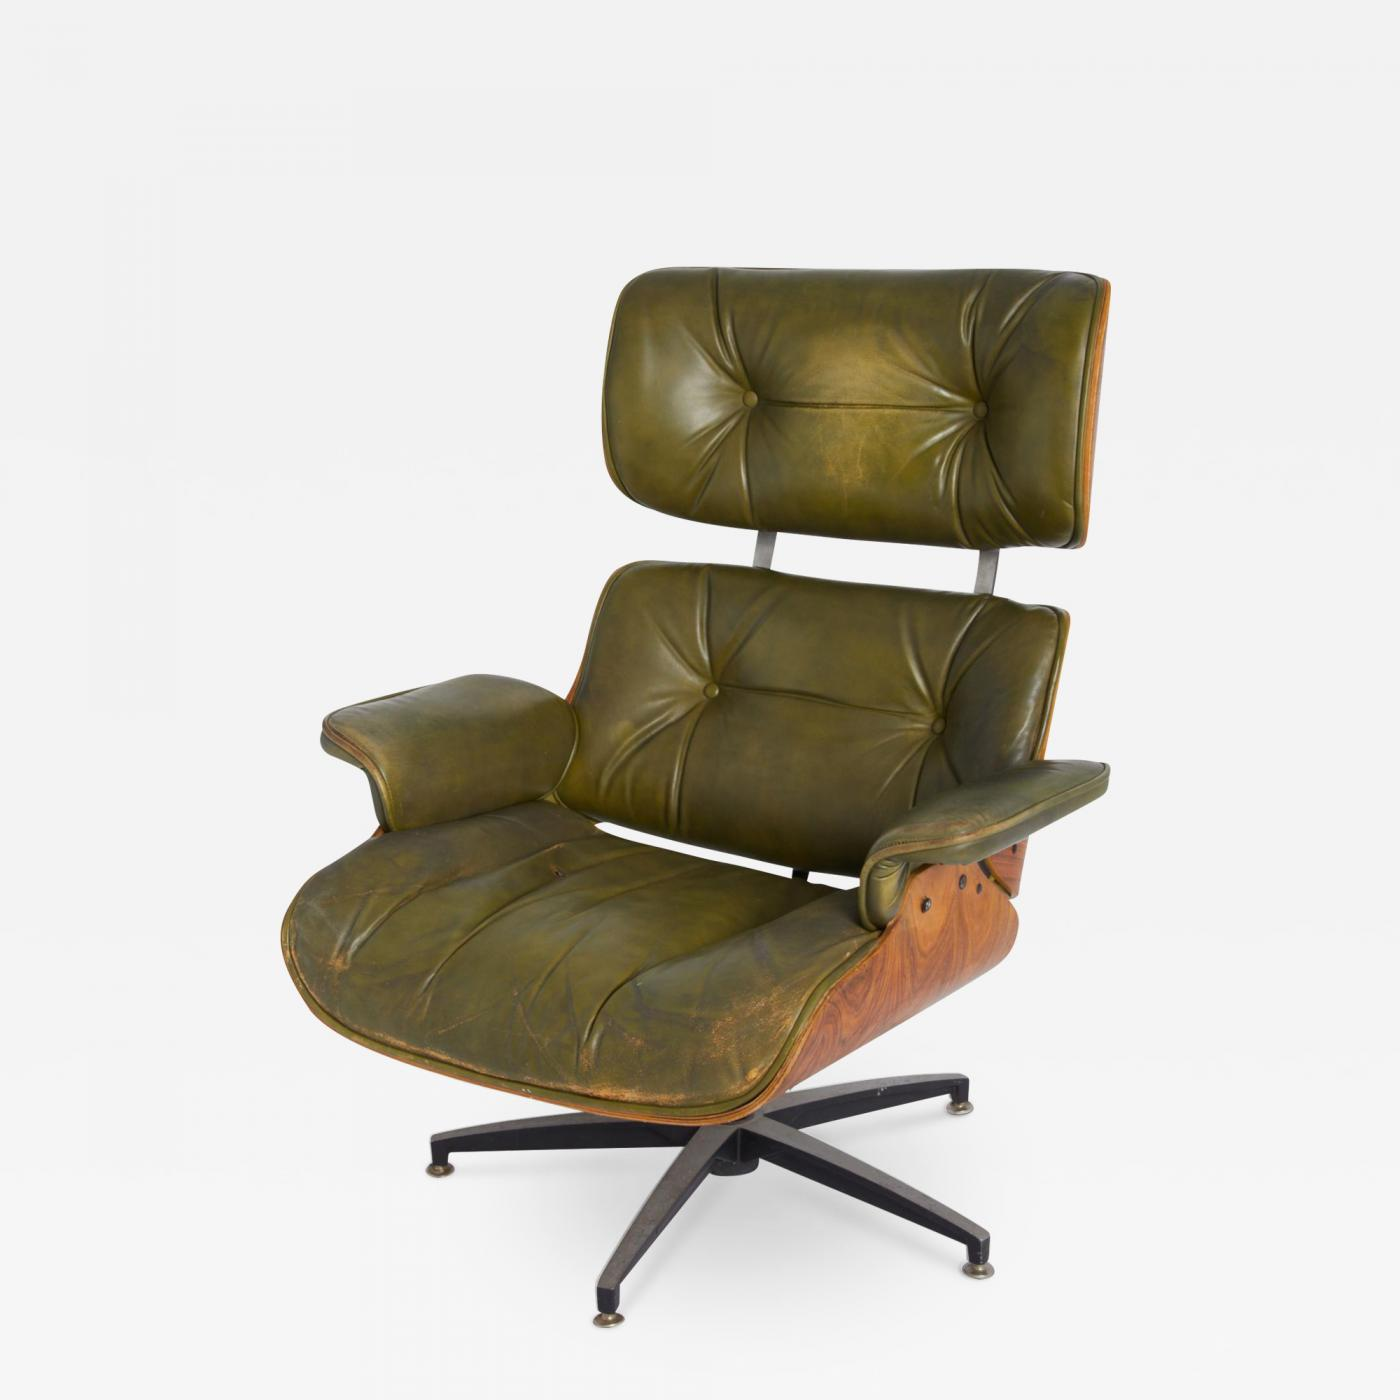 Charles Eames Lounge Chair Charles & Ray Eames - Early Model 670 Green Leather Lounge Chair